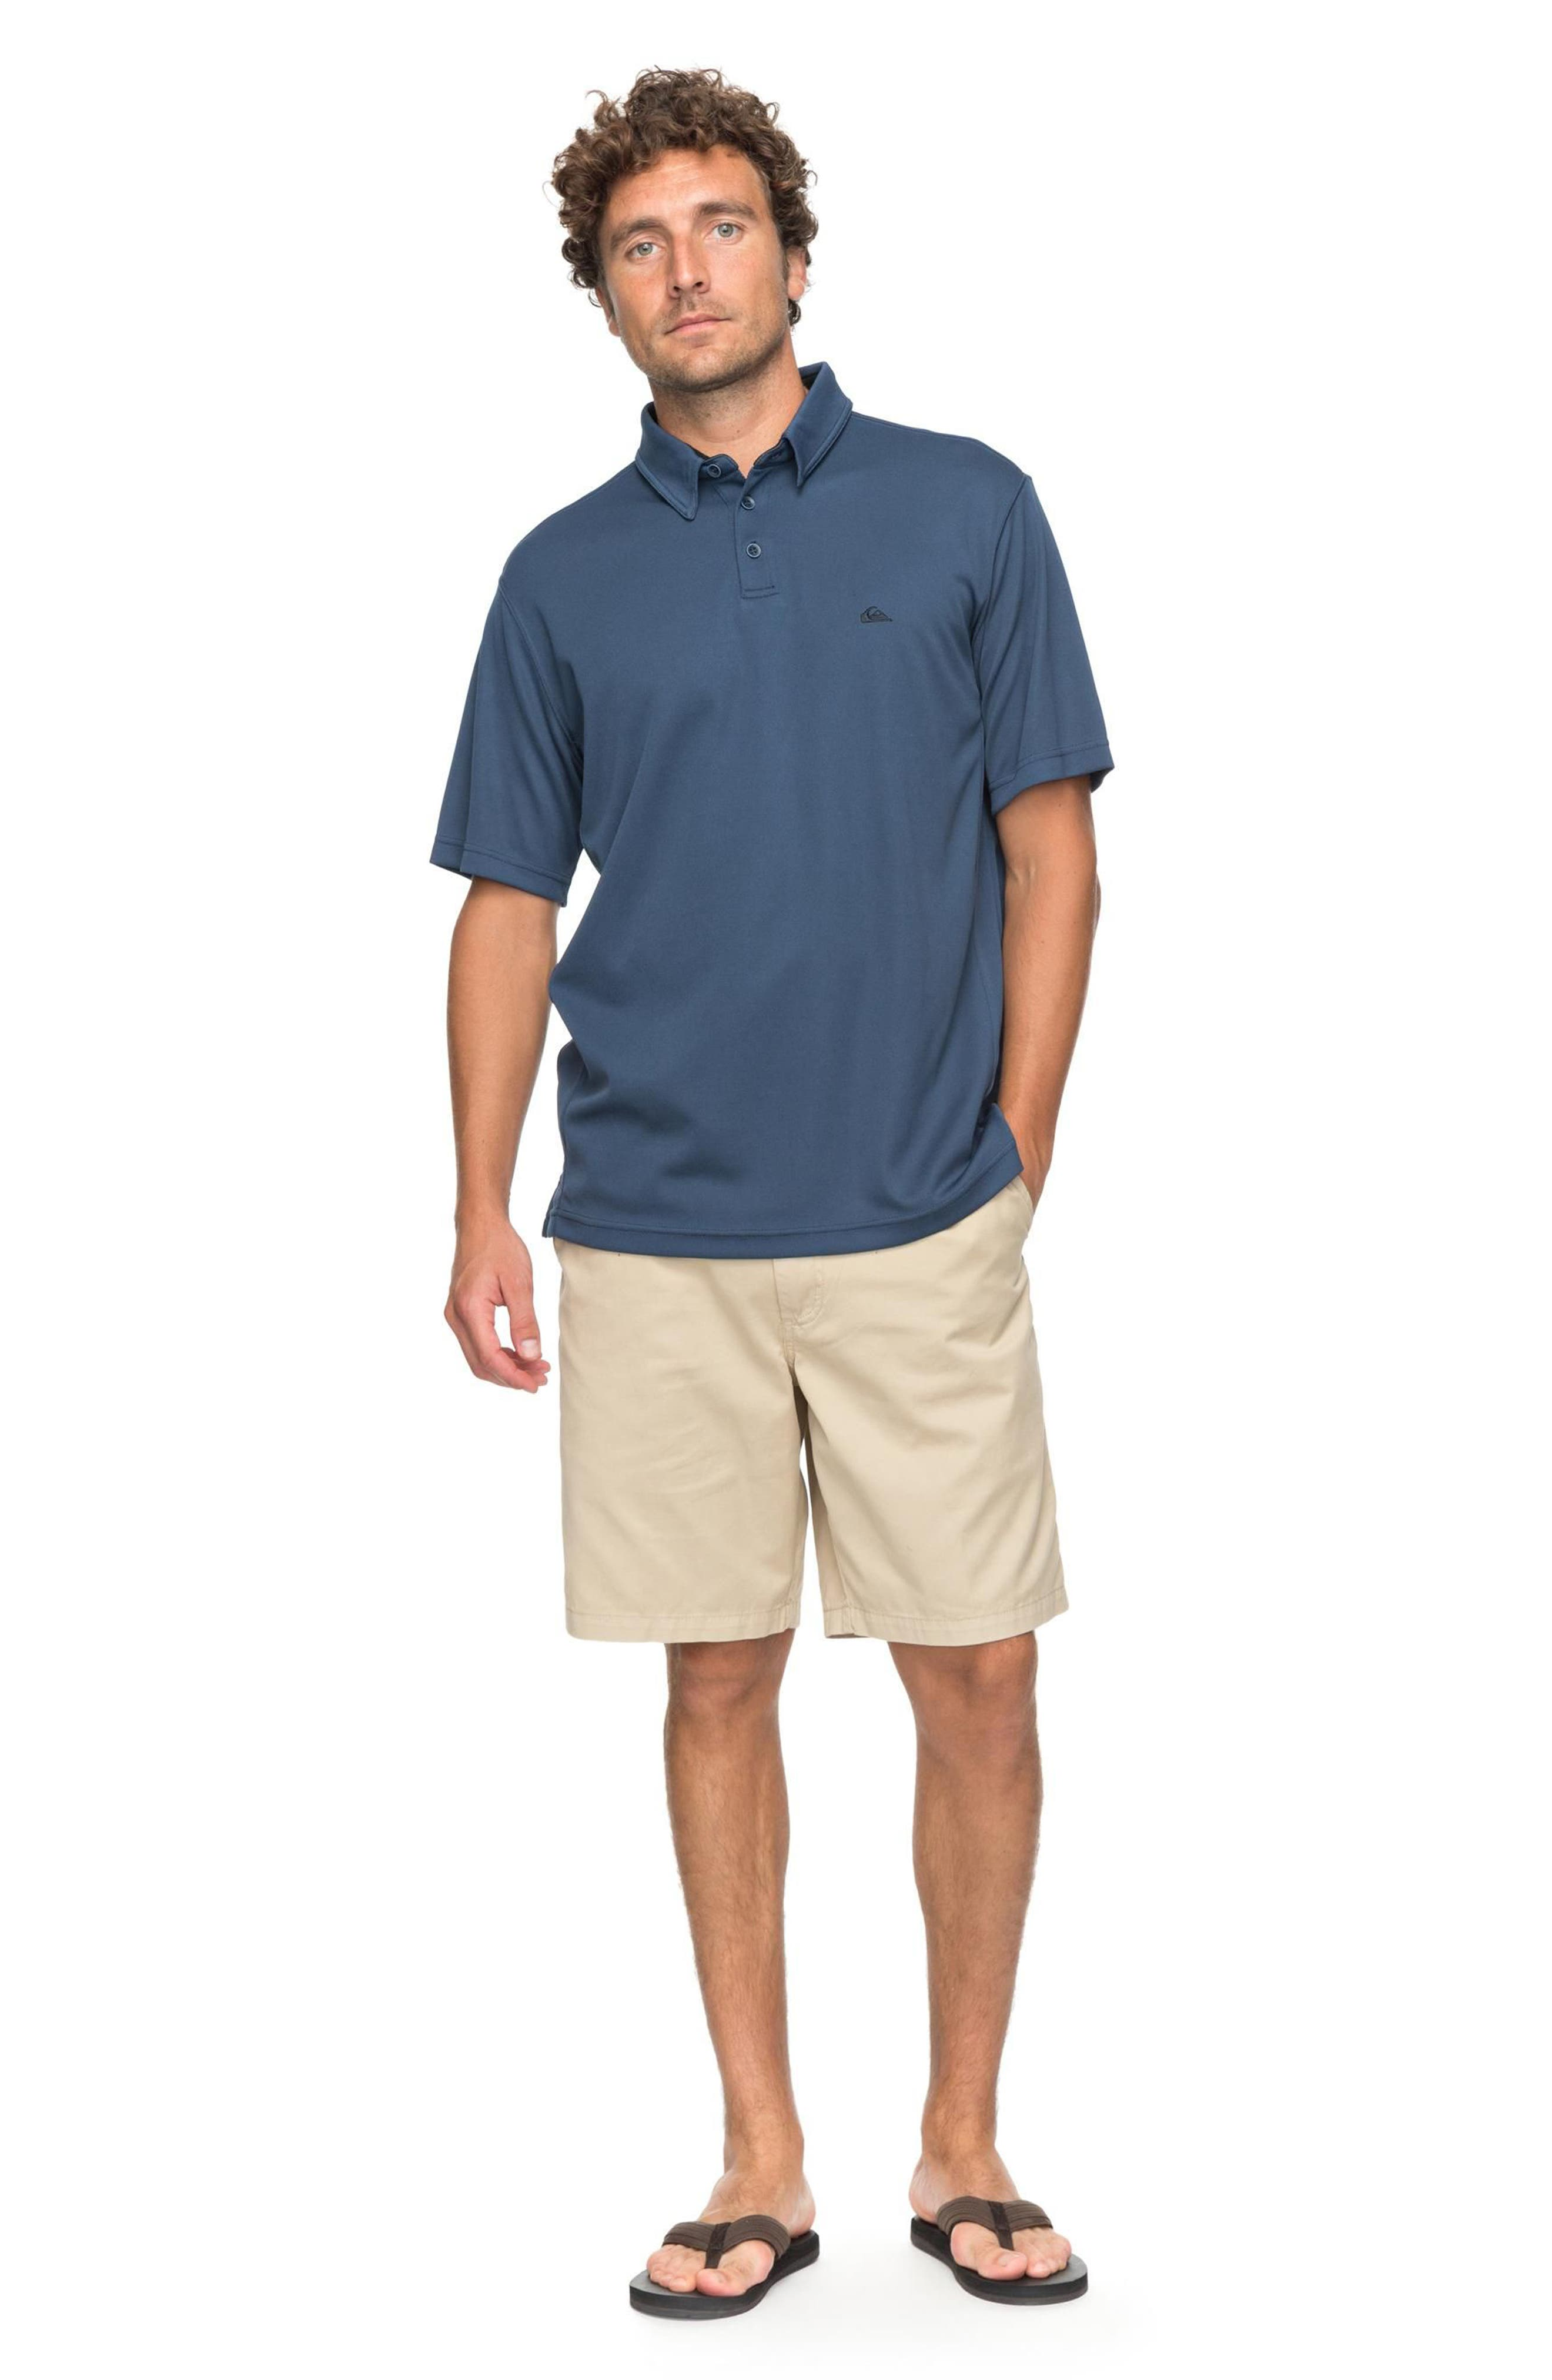 Alternate Image 3  - Quiksilver Waterman Collection Water 2 Technical Polo Shirt